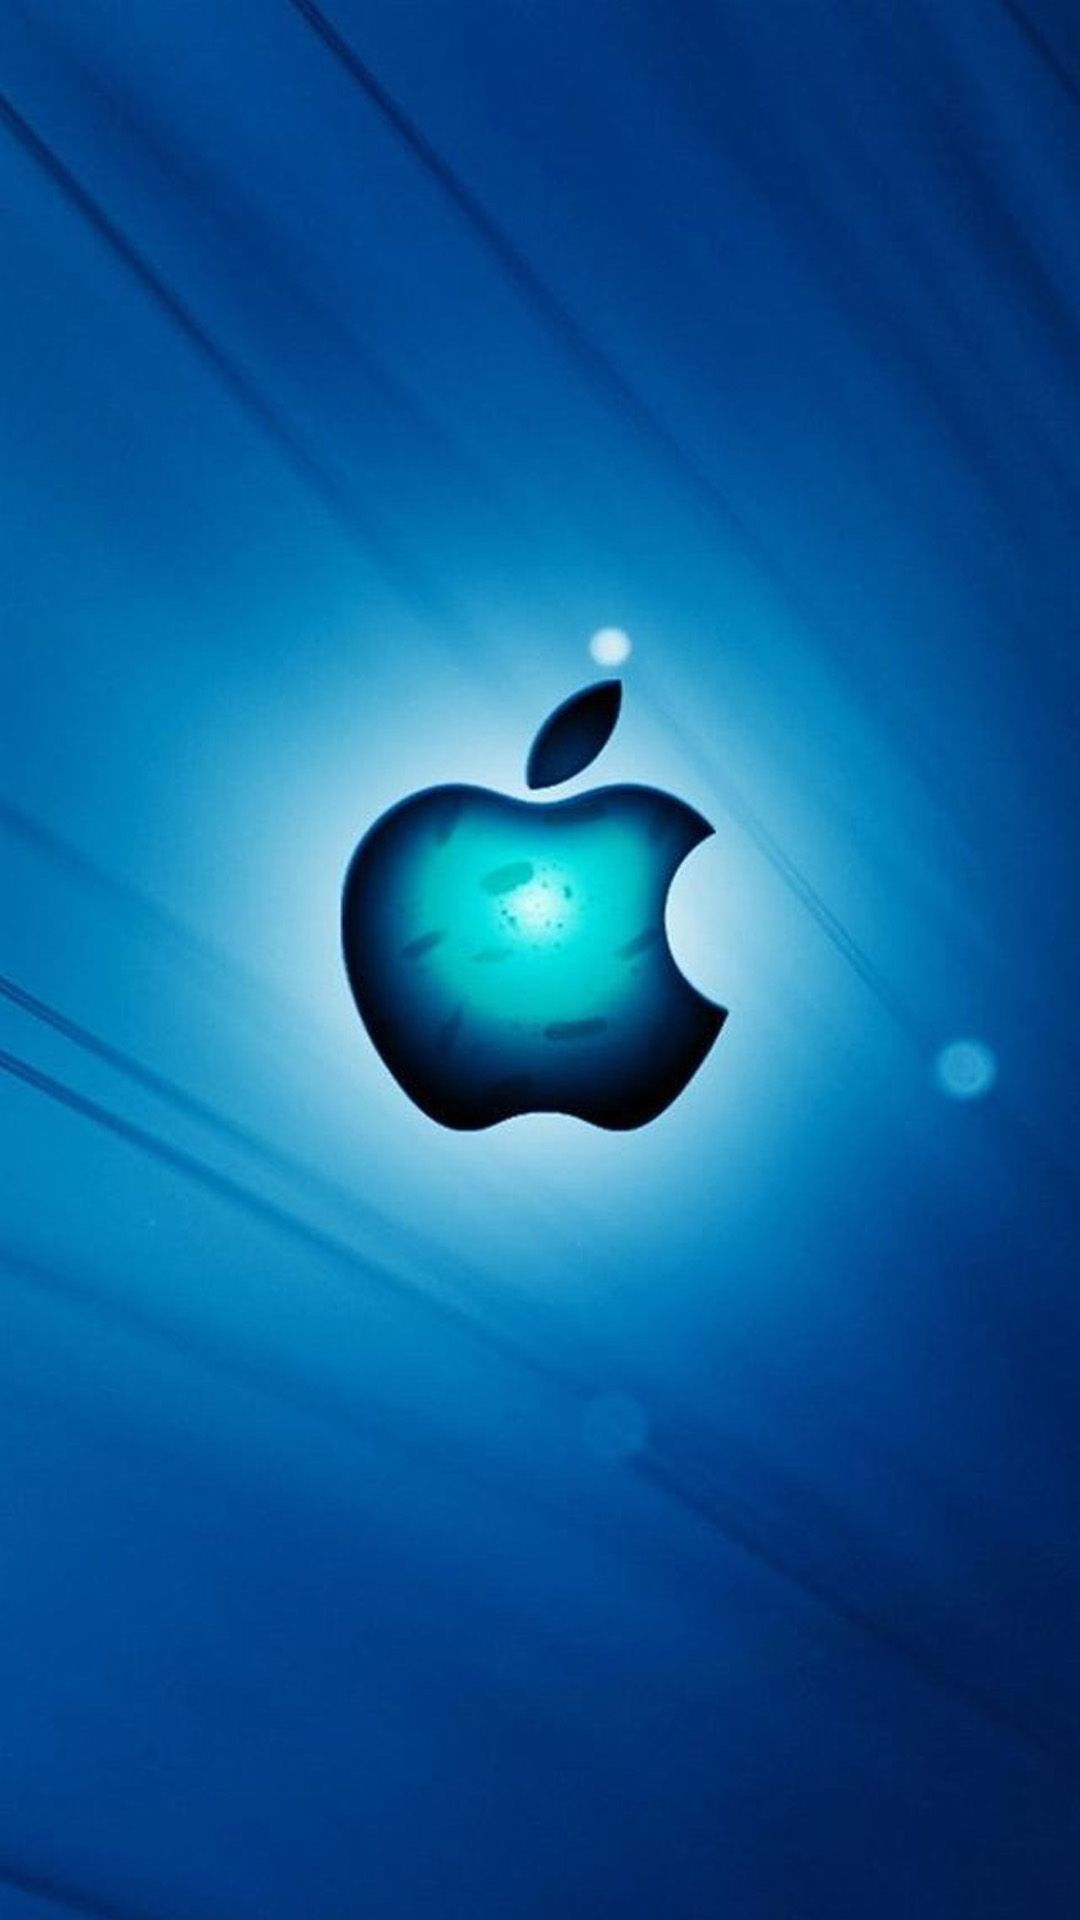 d apple logo iphone wallpaper ipod wallpaper hd free download | hd